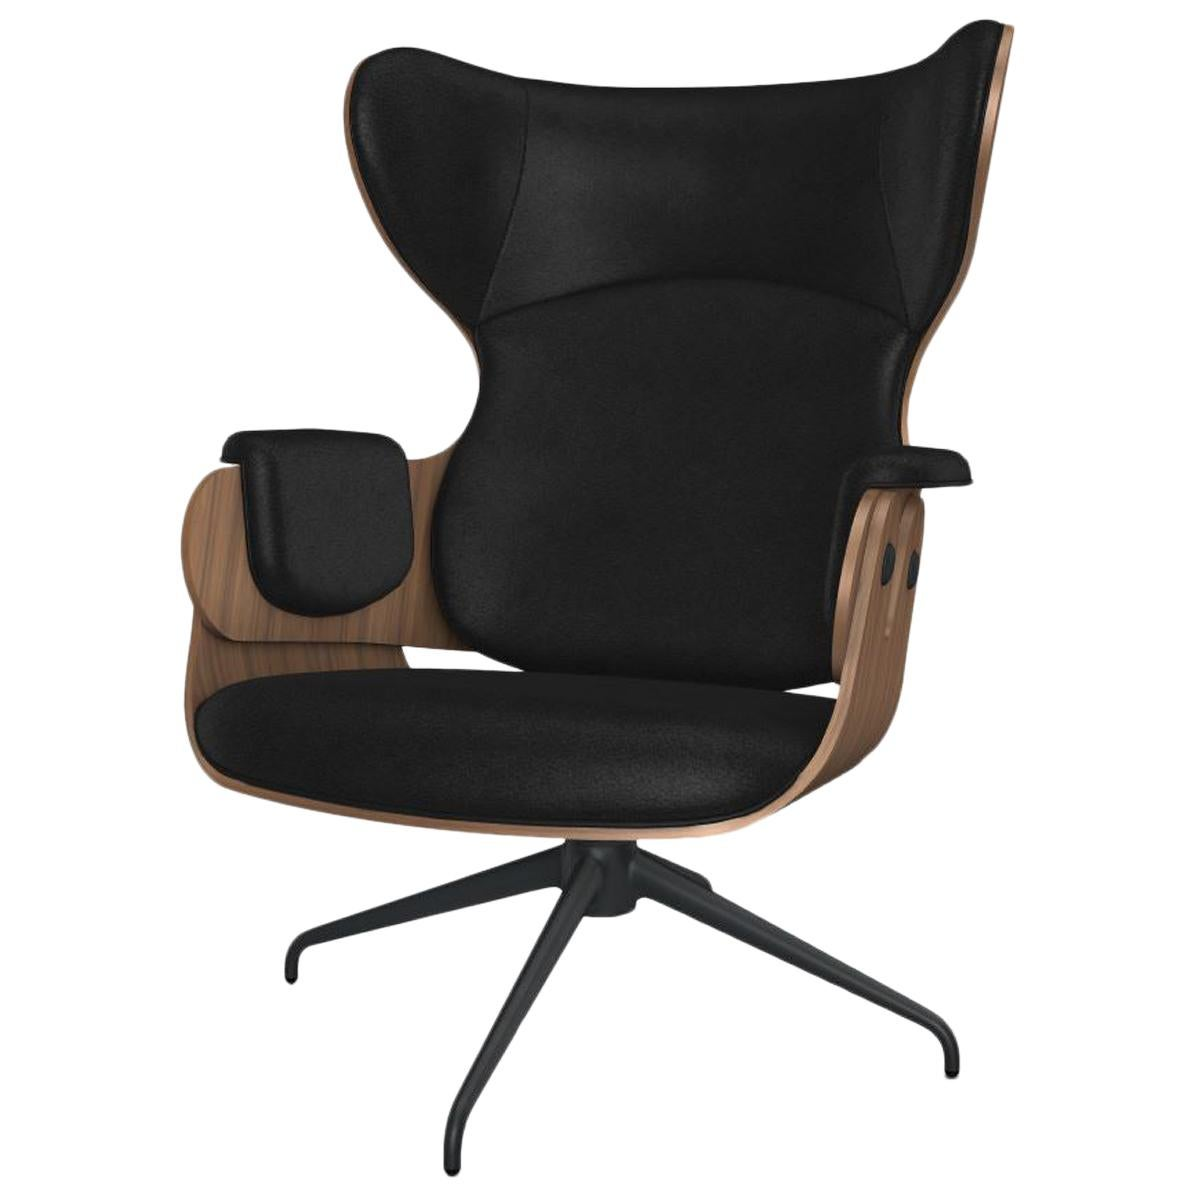 BD Lounger Chair by BD Barcelona in Leather